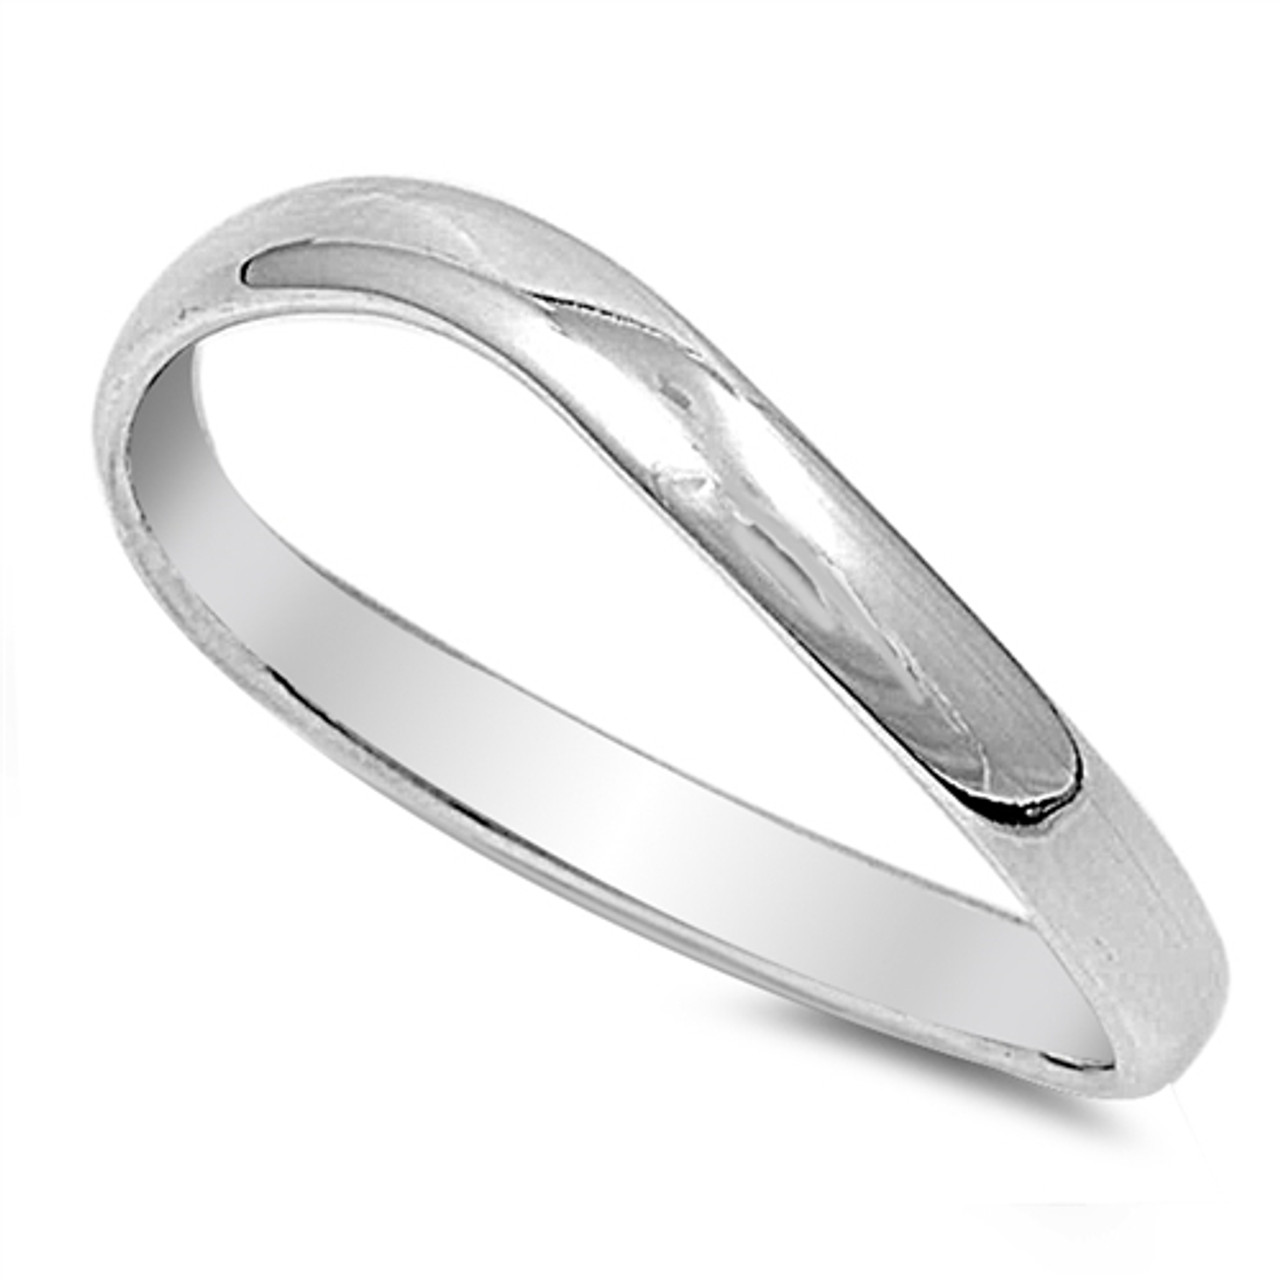 925 STERLING SILVER Plain Curved Wedding Ring 3mm Band - Shendell s ... d71859f5b